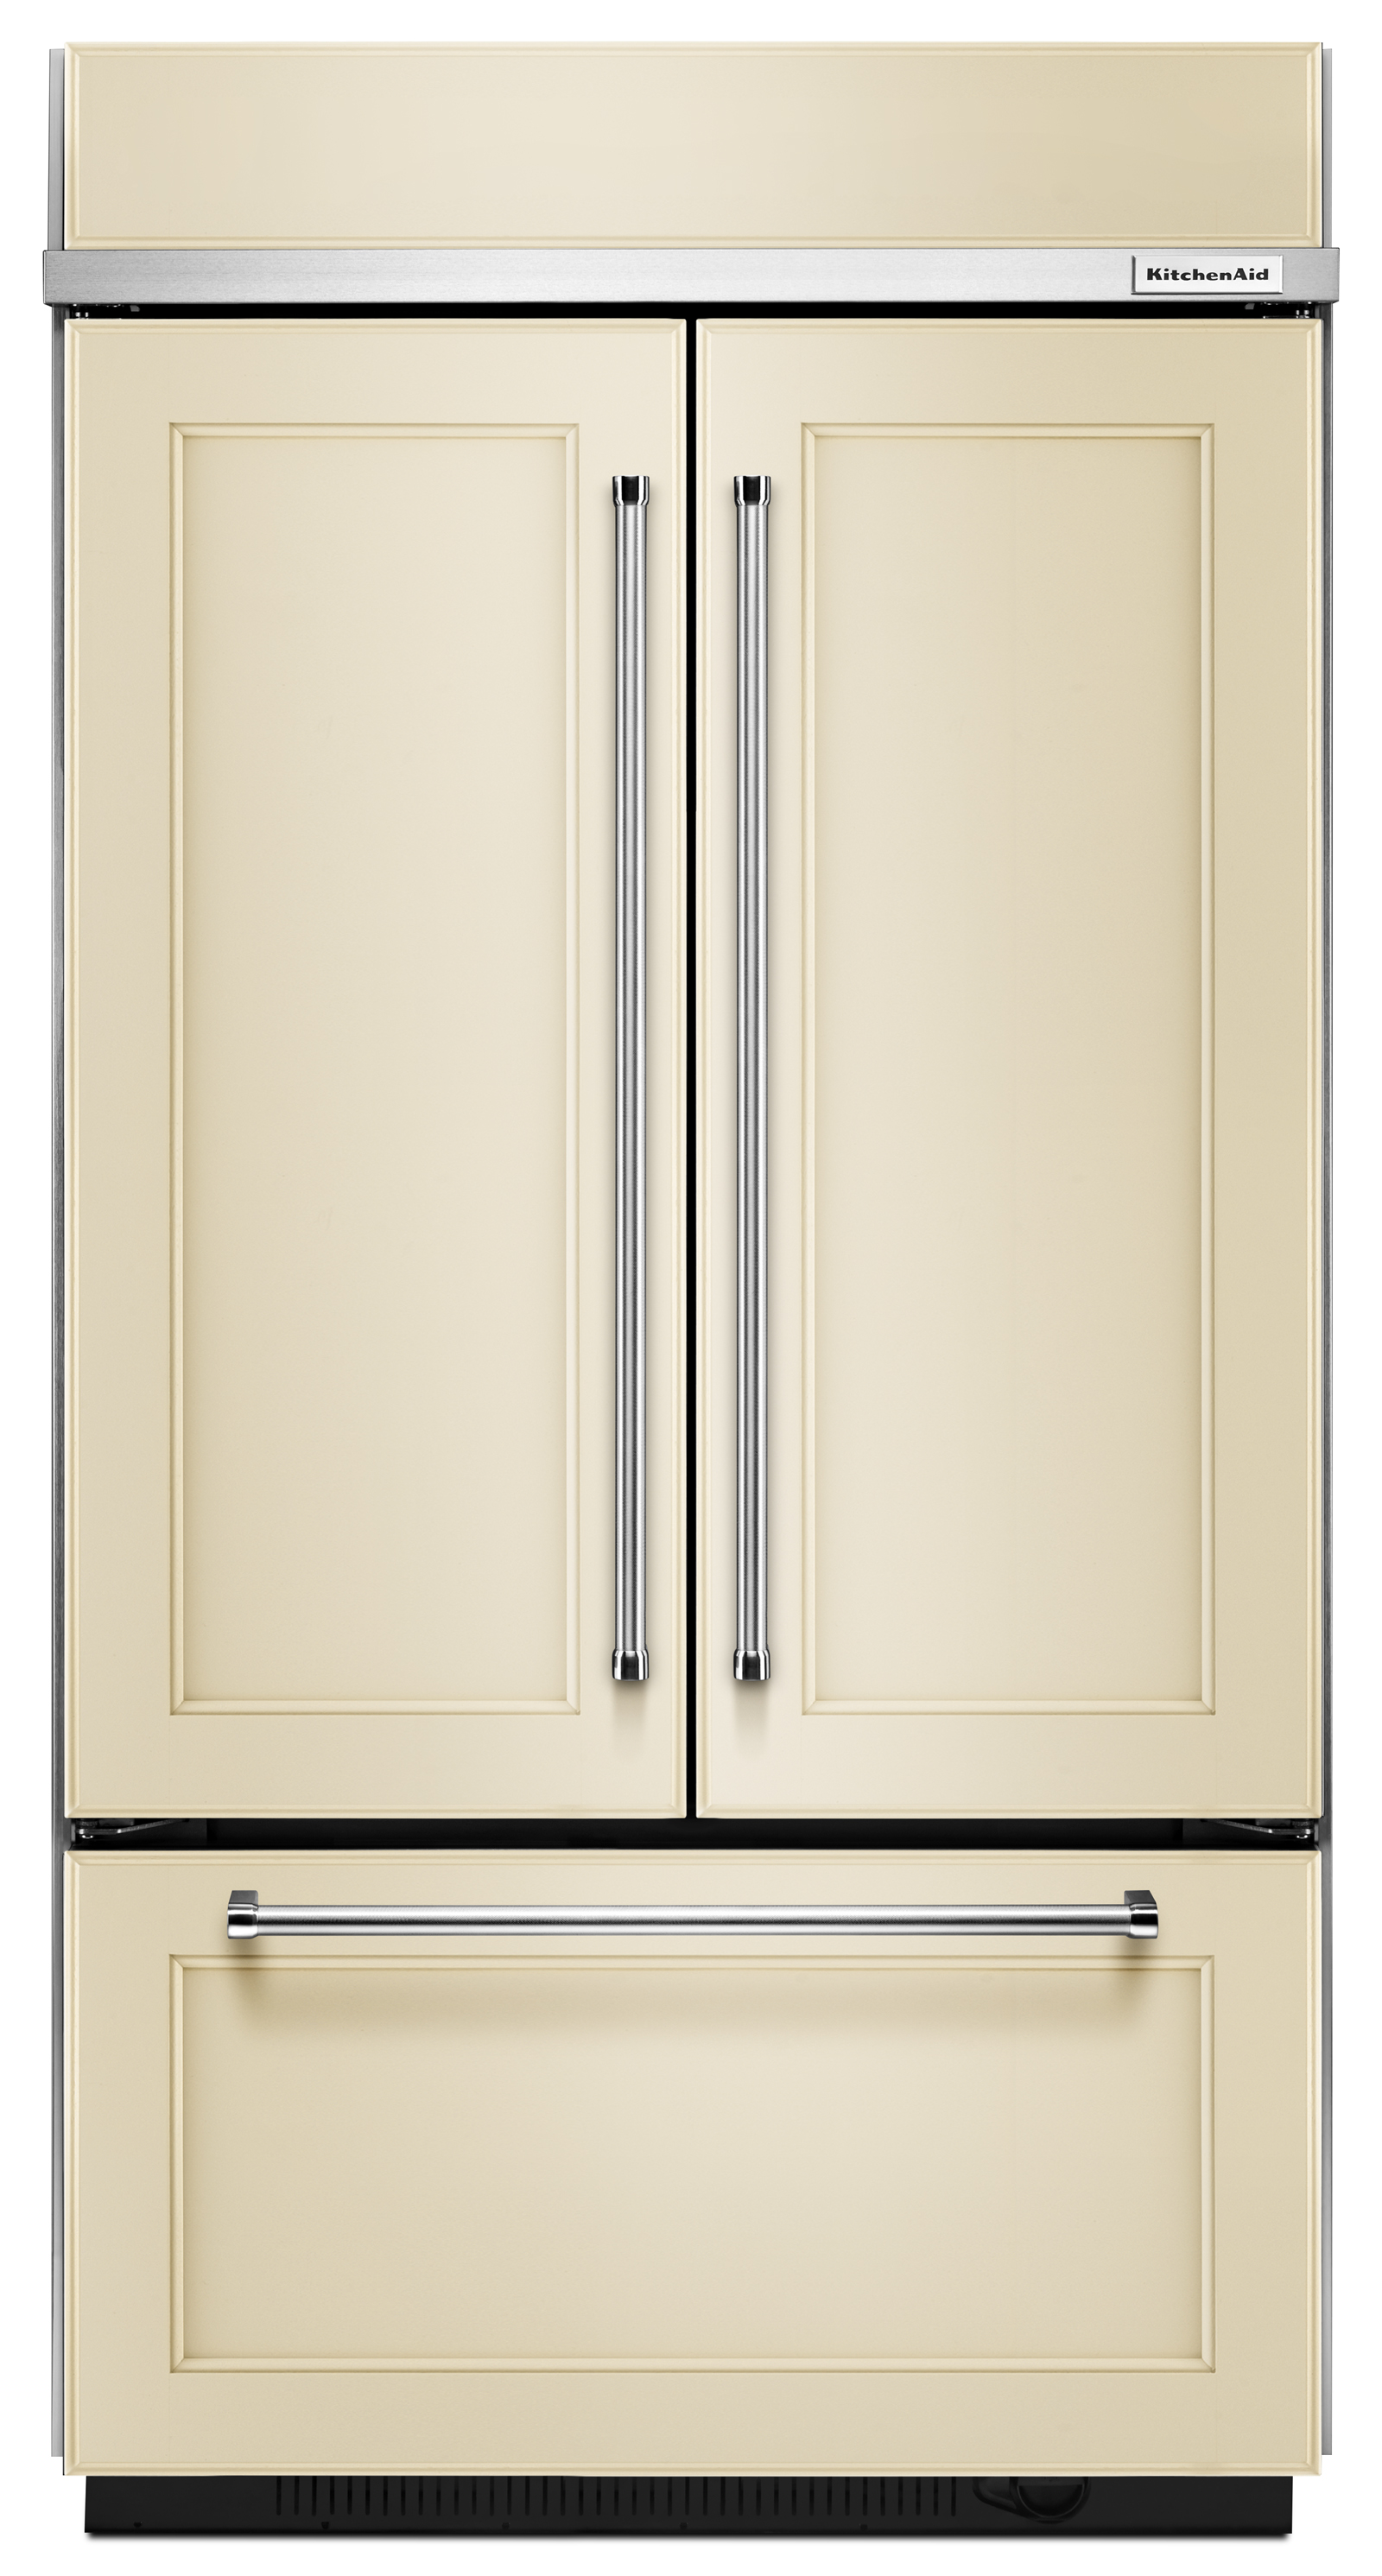 KitchenAid KBFN402EPA 24.2 cu. ft. Built-In French Door Refrigerator - Panel Ready